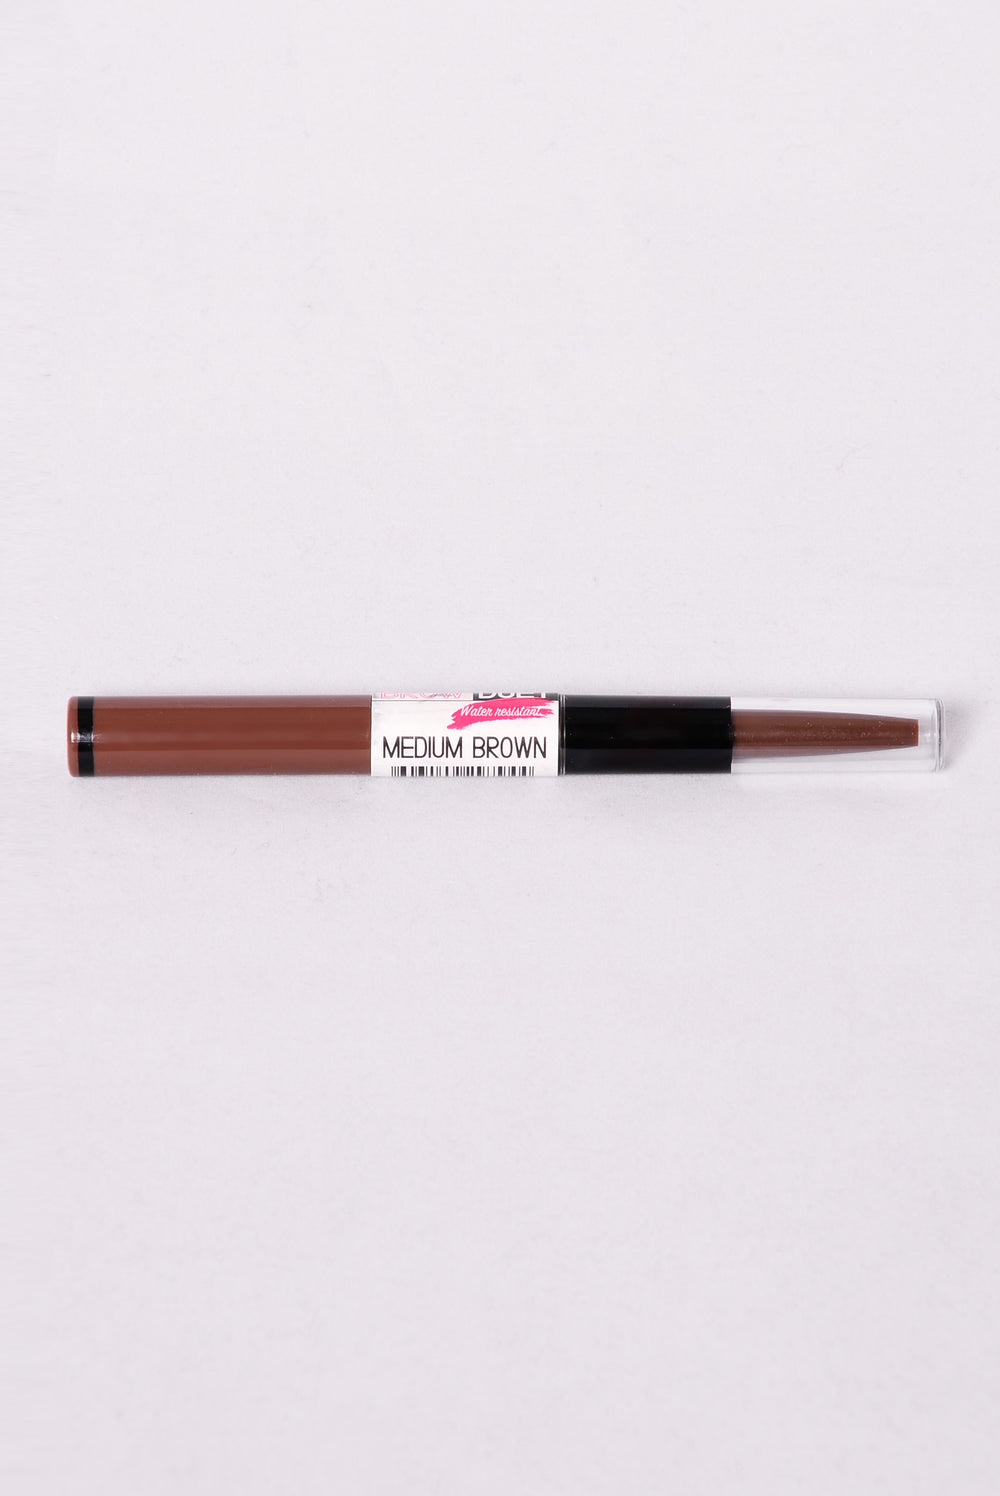 Beauty Creations: Brow Duet - Medium Brown